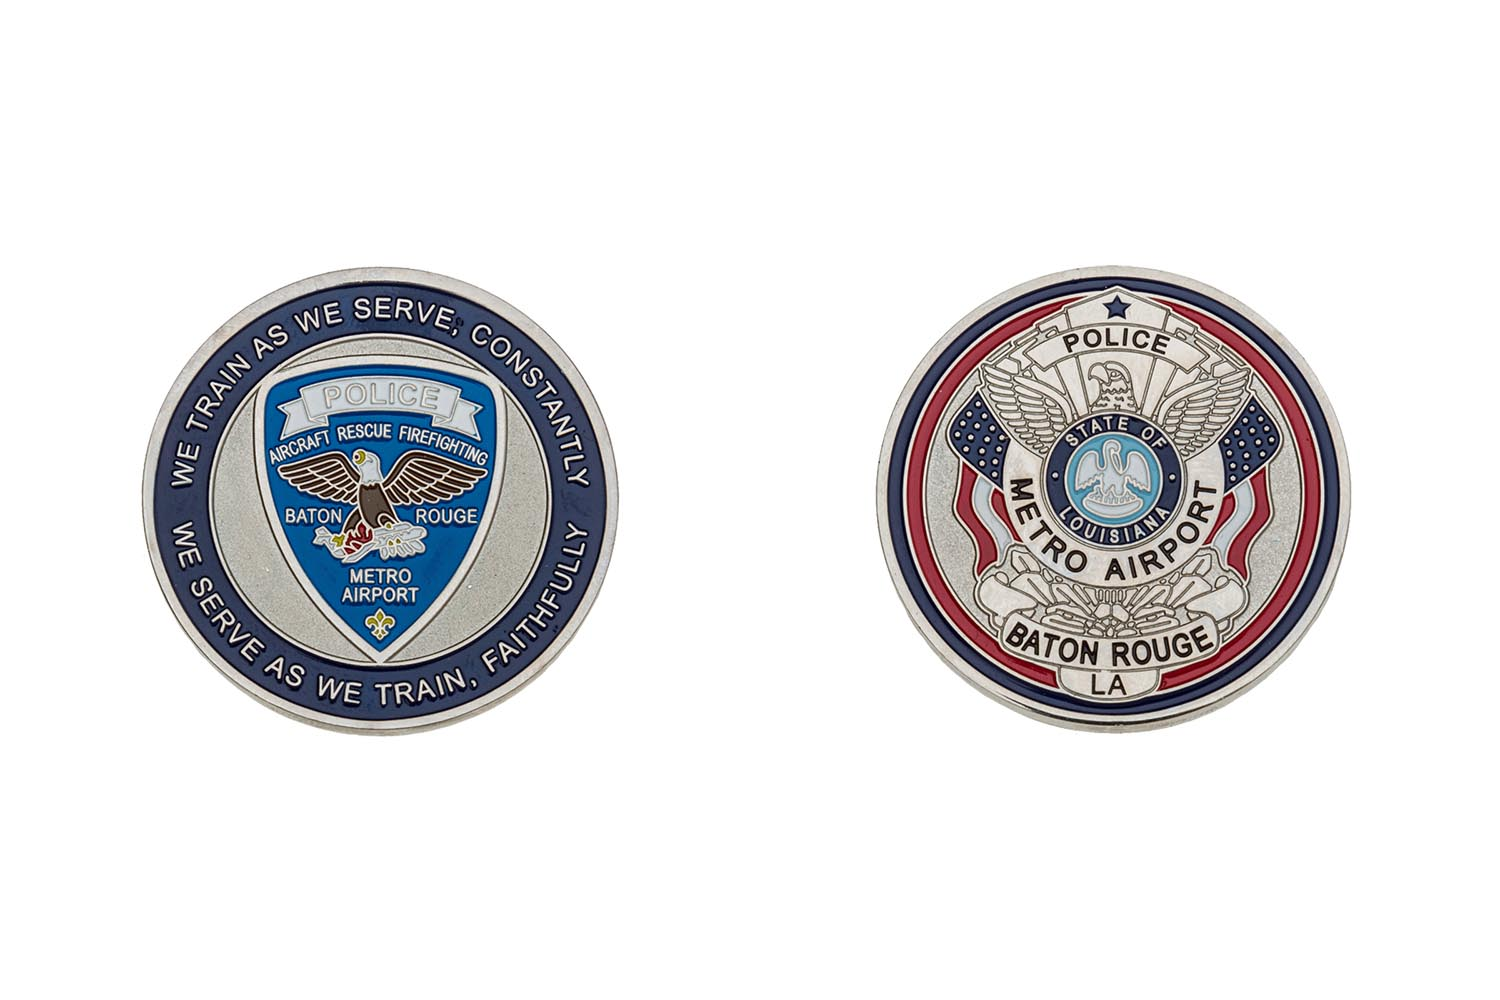 Metal airport police coins